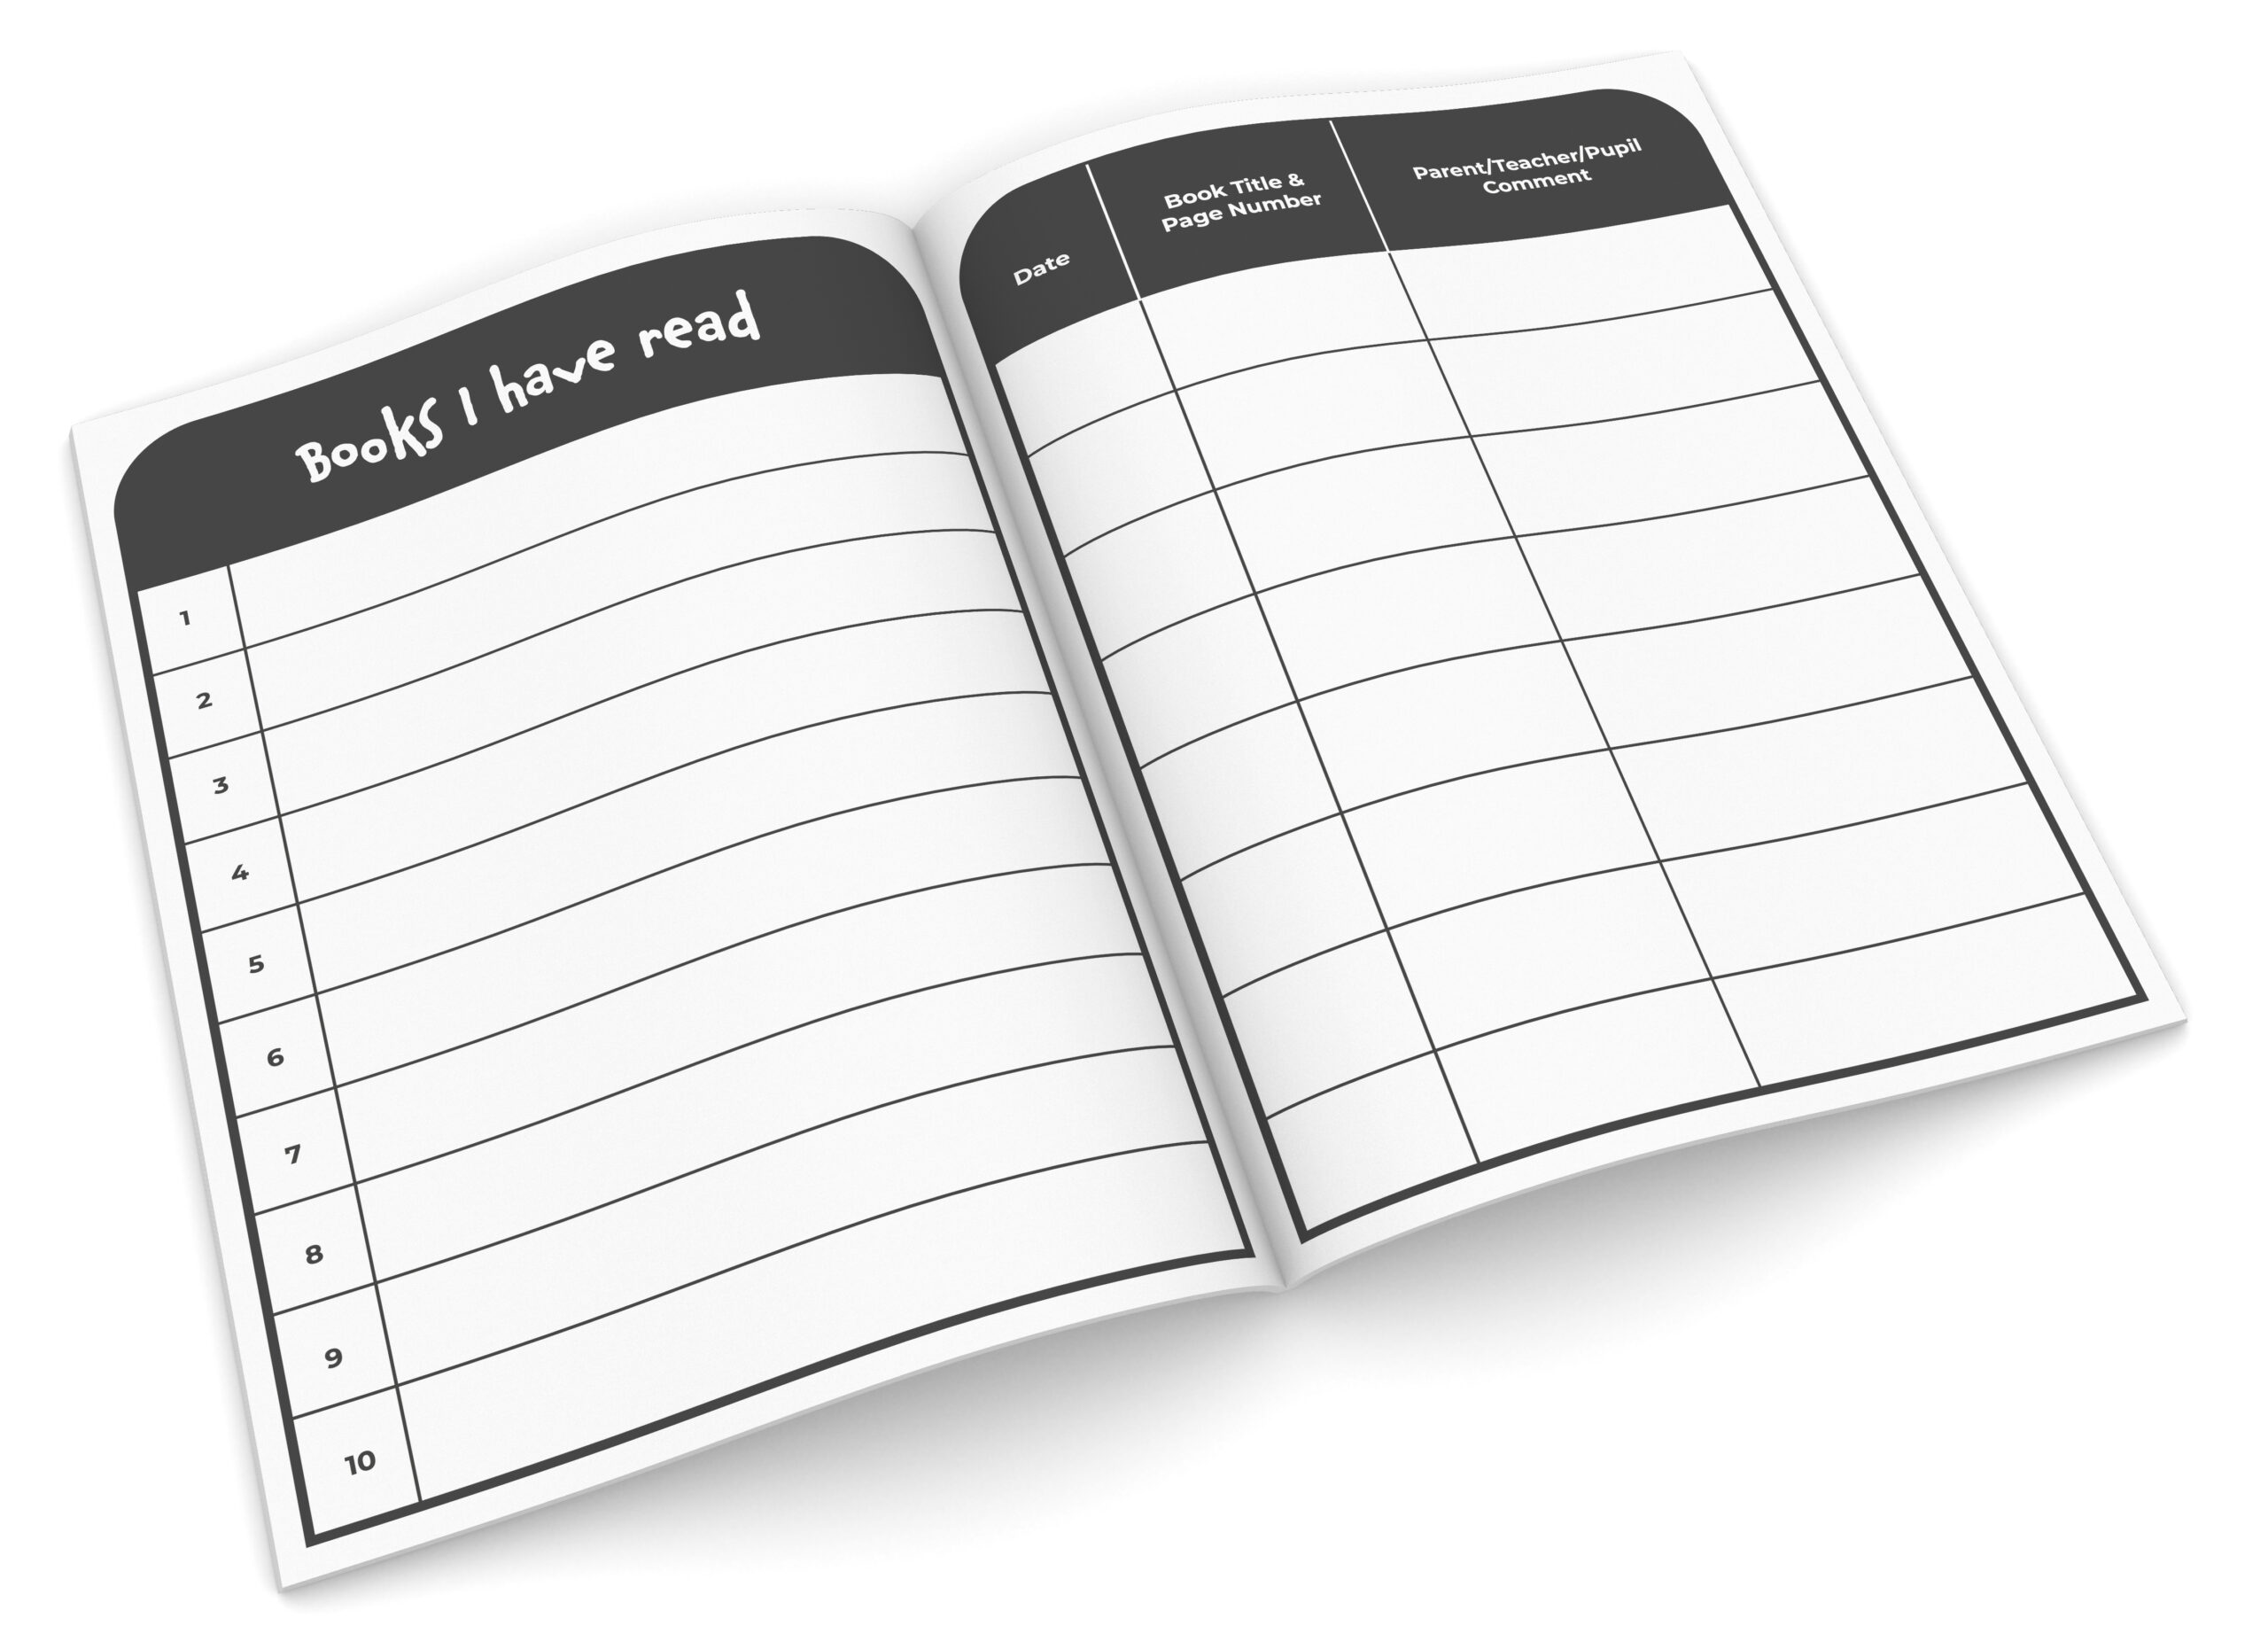 A5 Reading Record - The Exercise Book Company